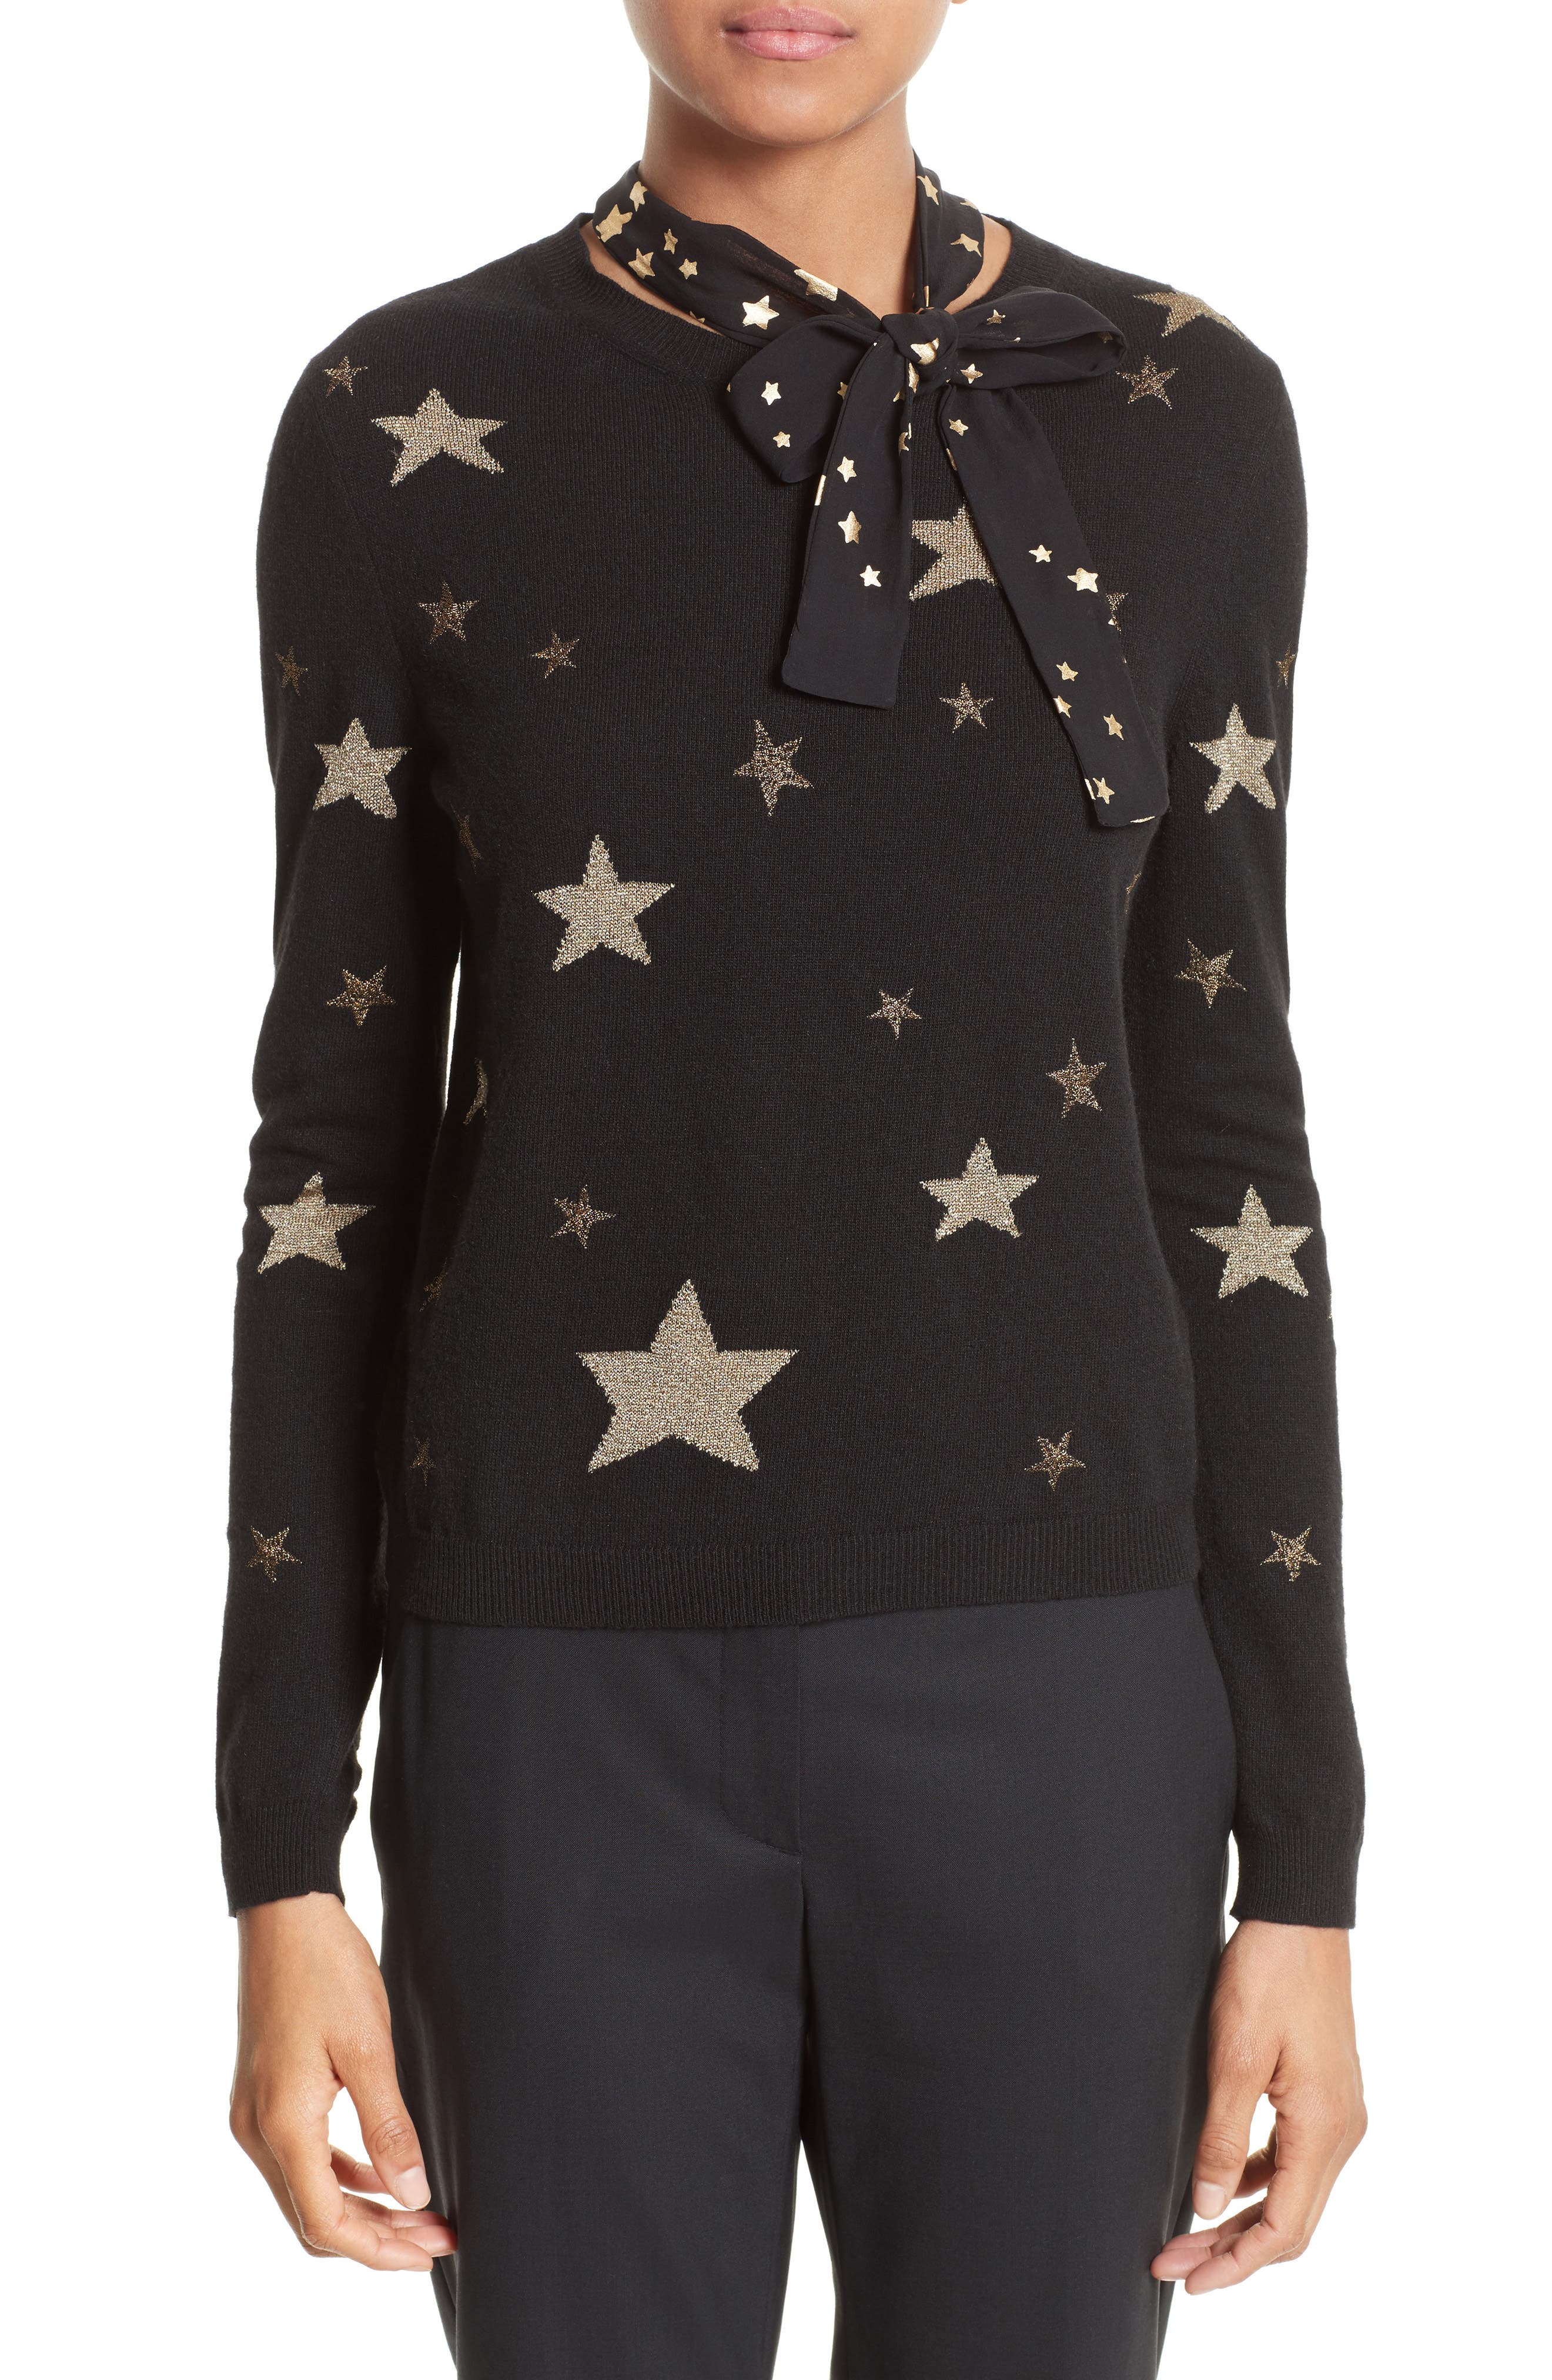 Alternate Image 1 Selected - RED Valentino Tie Neck Star Sweater